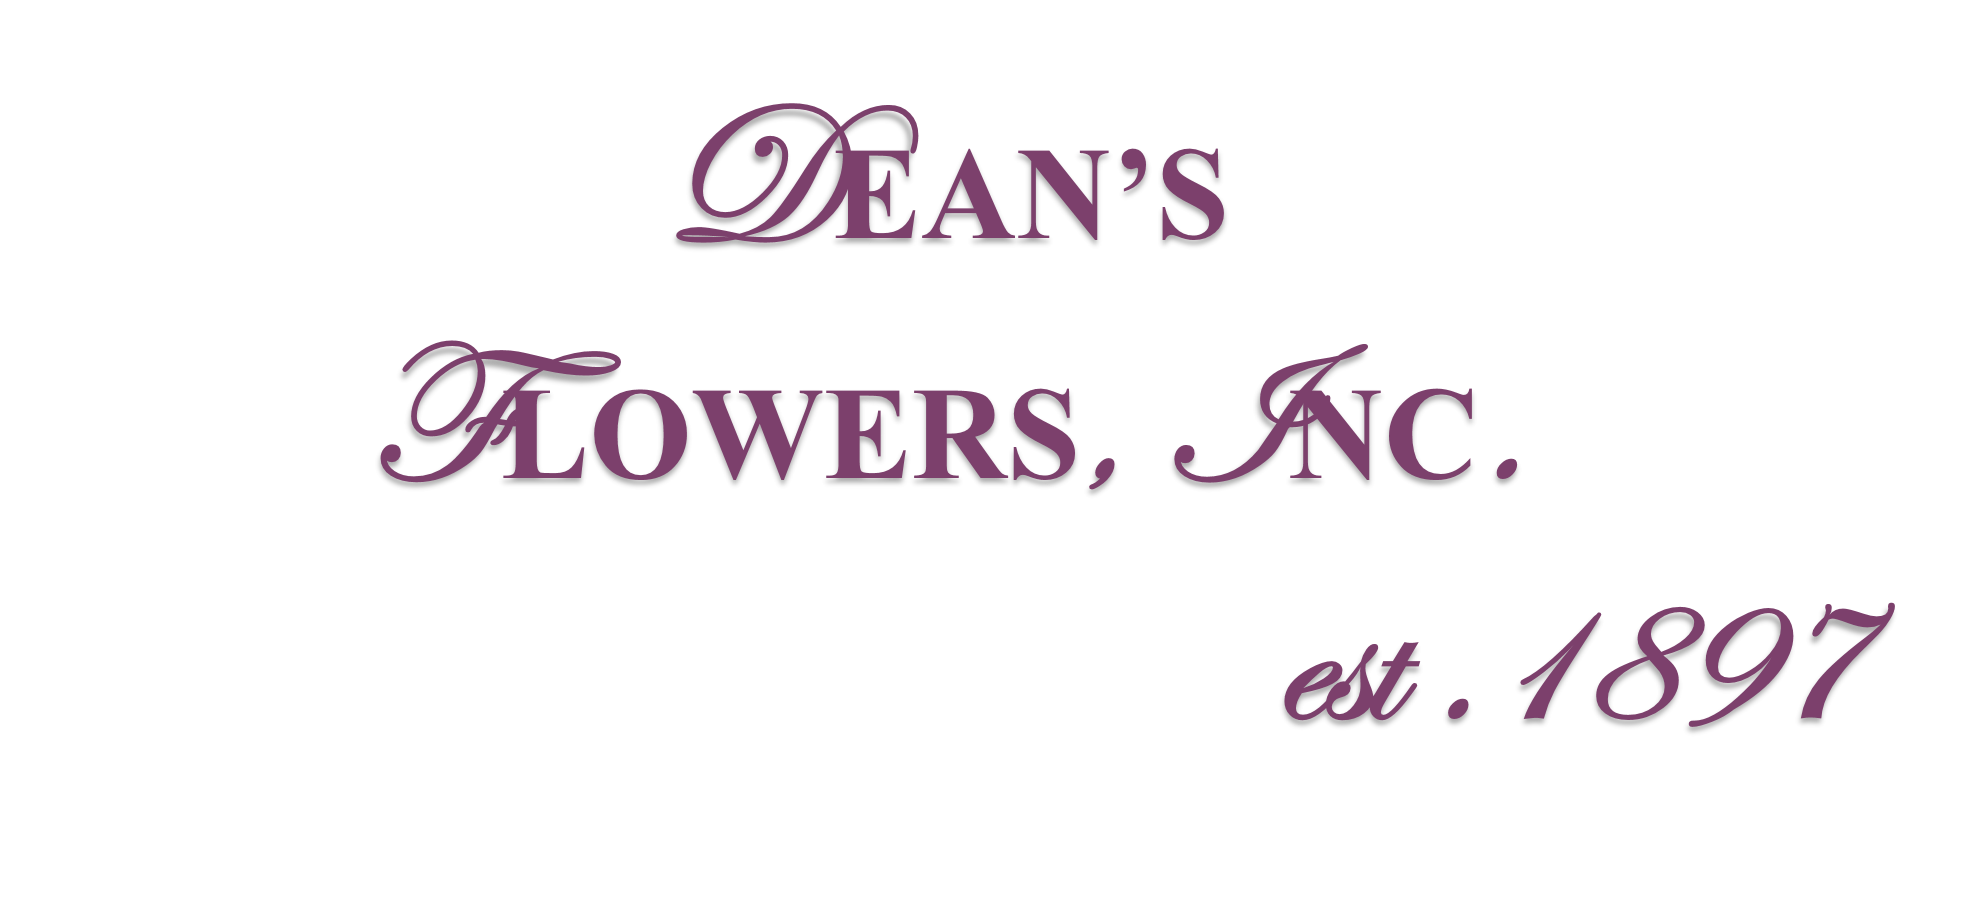 Red Bank Florist Flower Delivery By Deans Flowers Inc